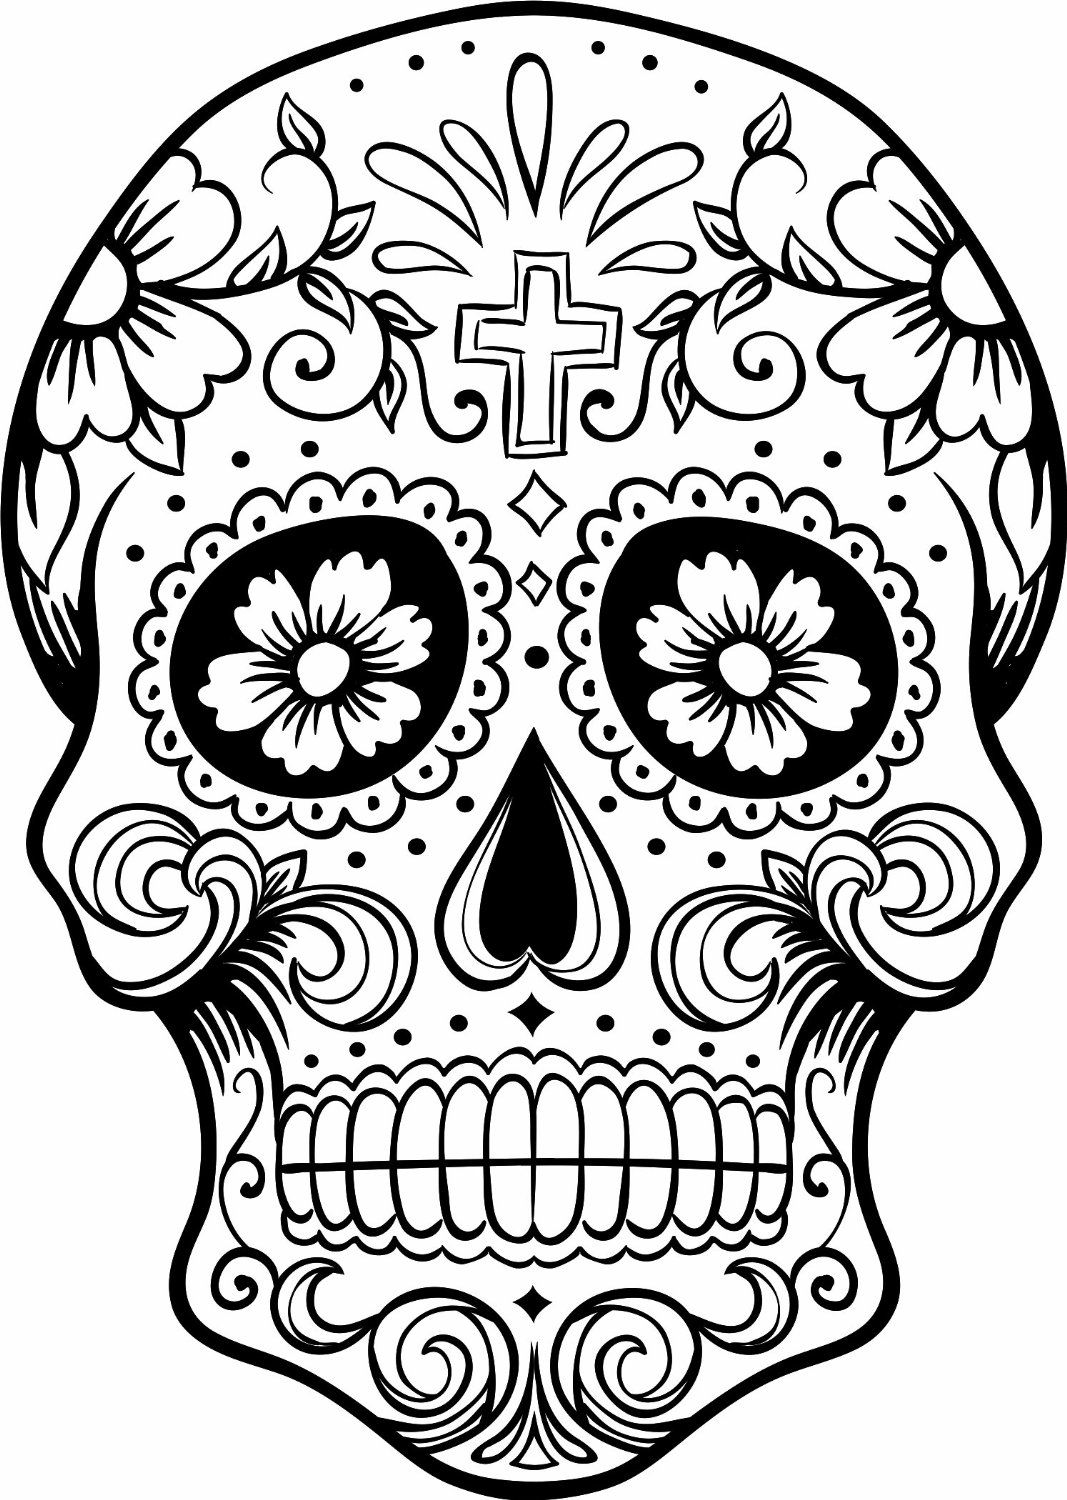 1067x1500 Complicolor Day Of The Dead Skull Coloring Pages Printable Pages